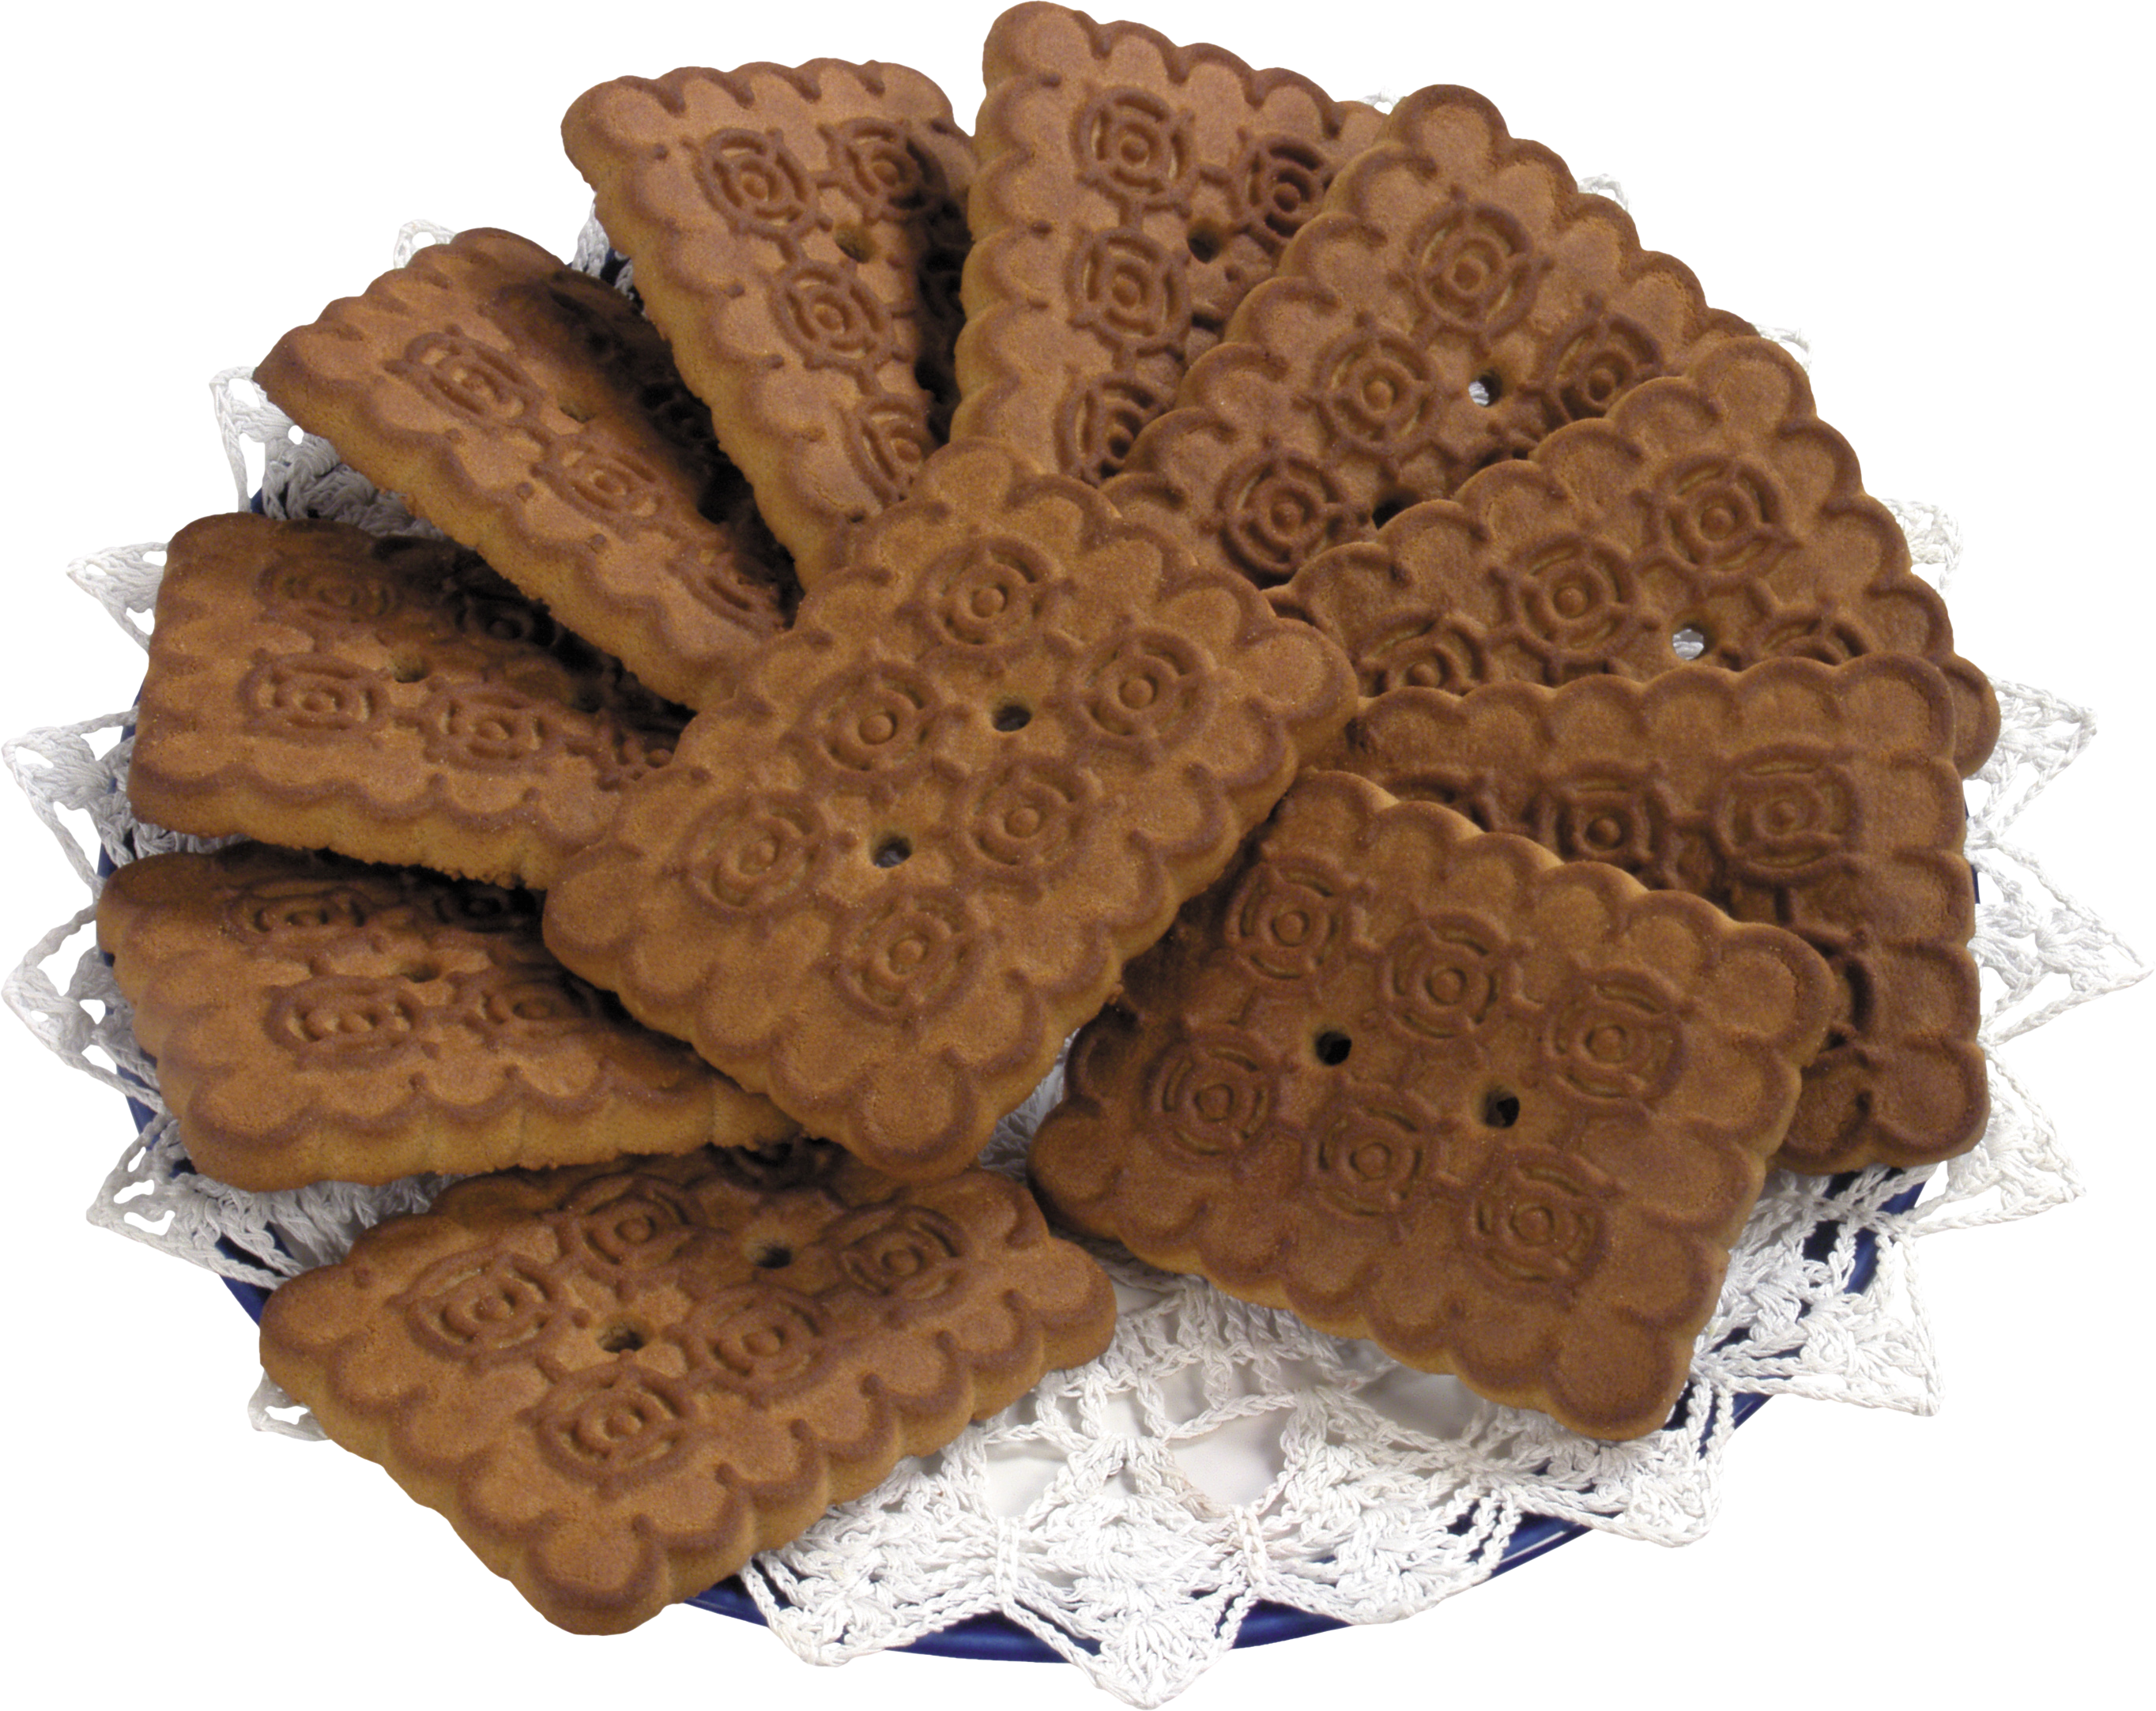 Plate of png image. Cookies clipart baked goods